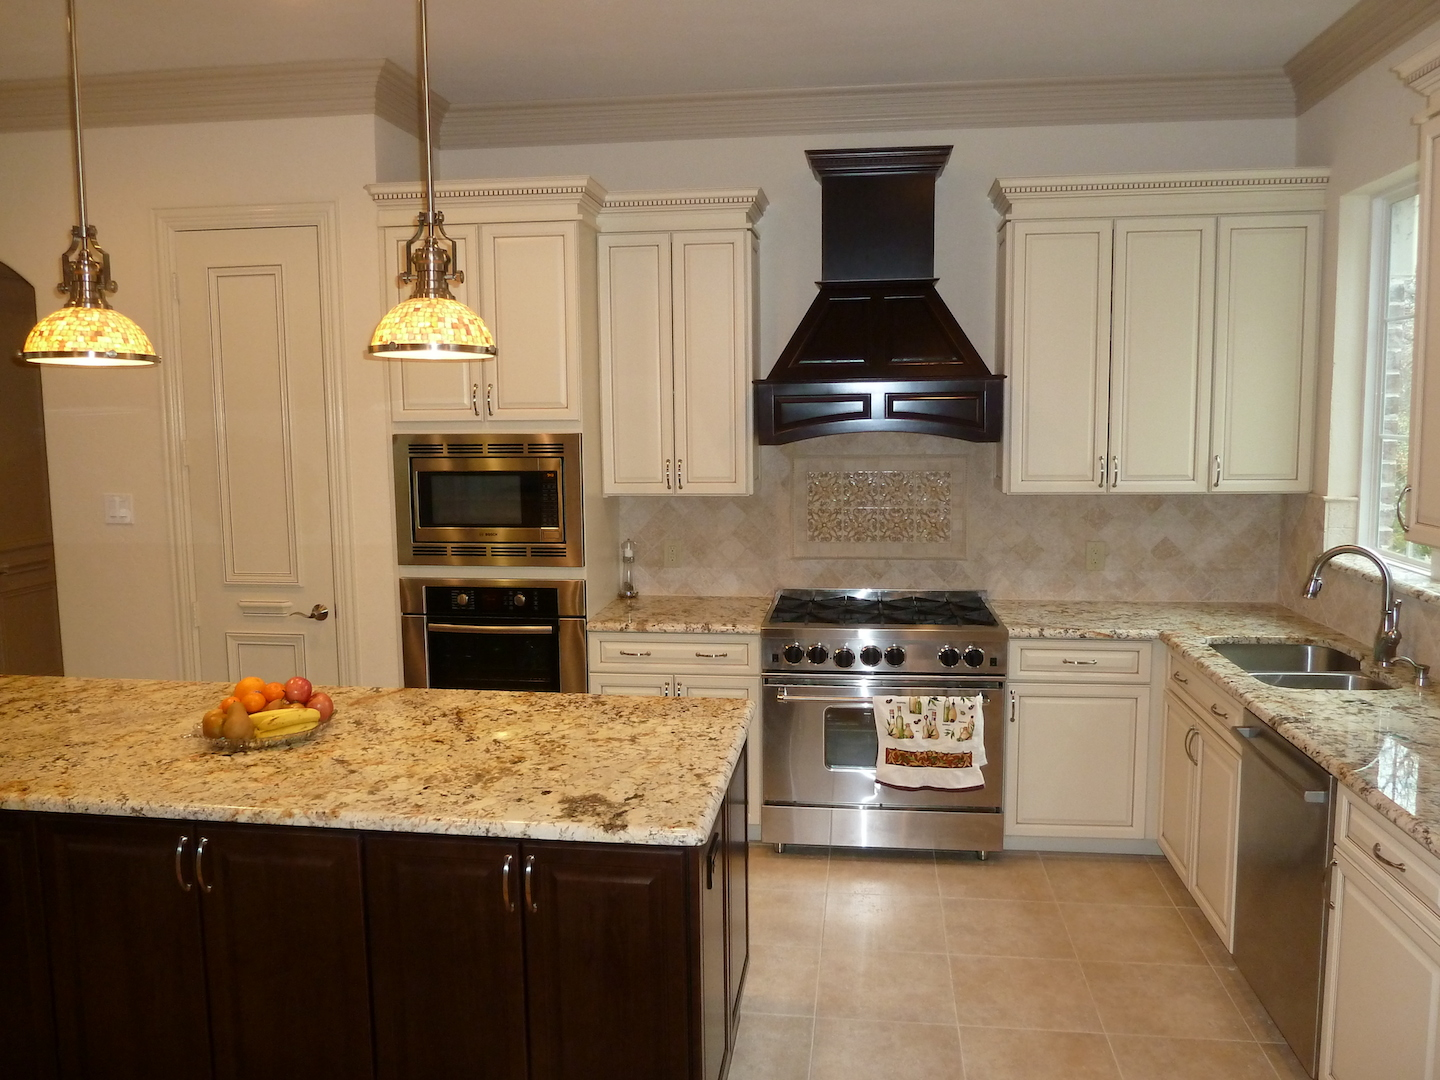 Kitchen Redesign Pictures Complete Kitchen Redesign And Remodeling In Flower Mound